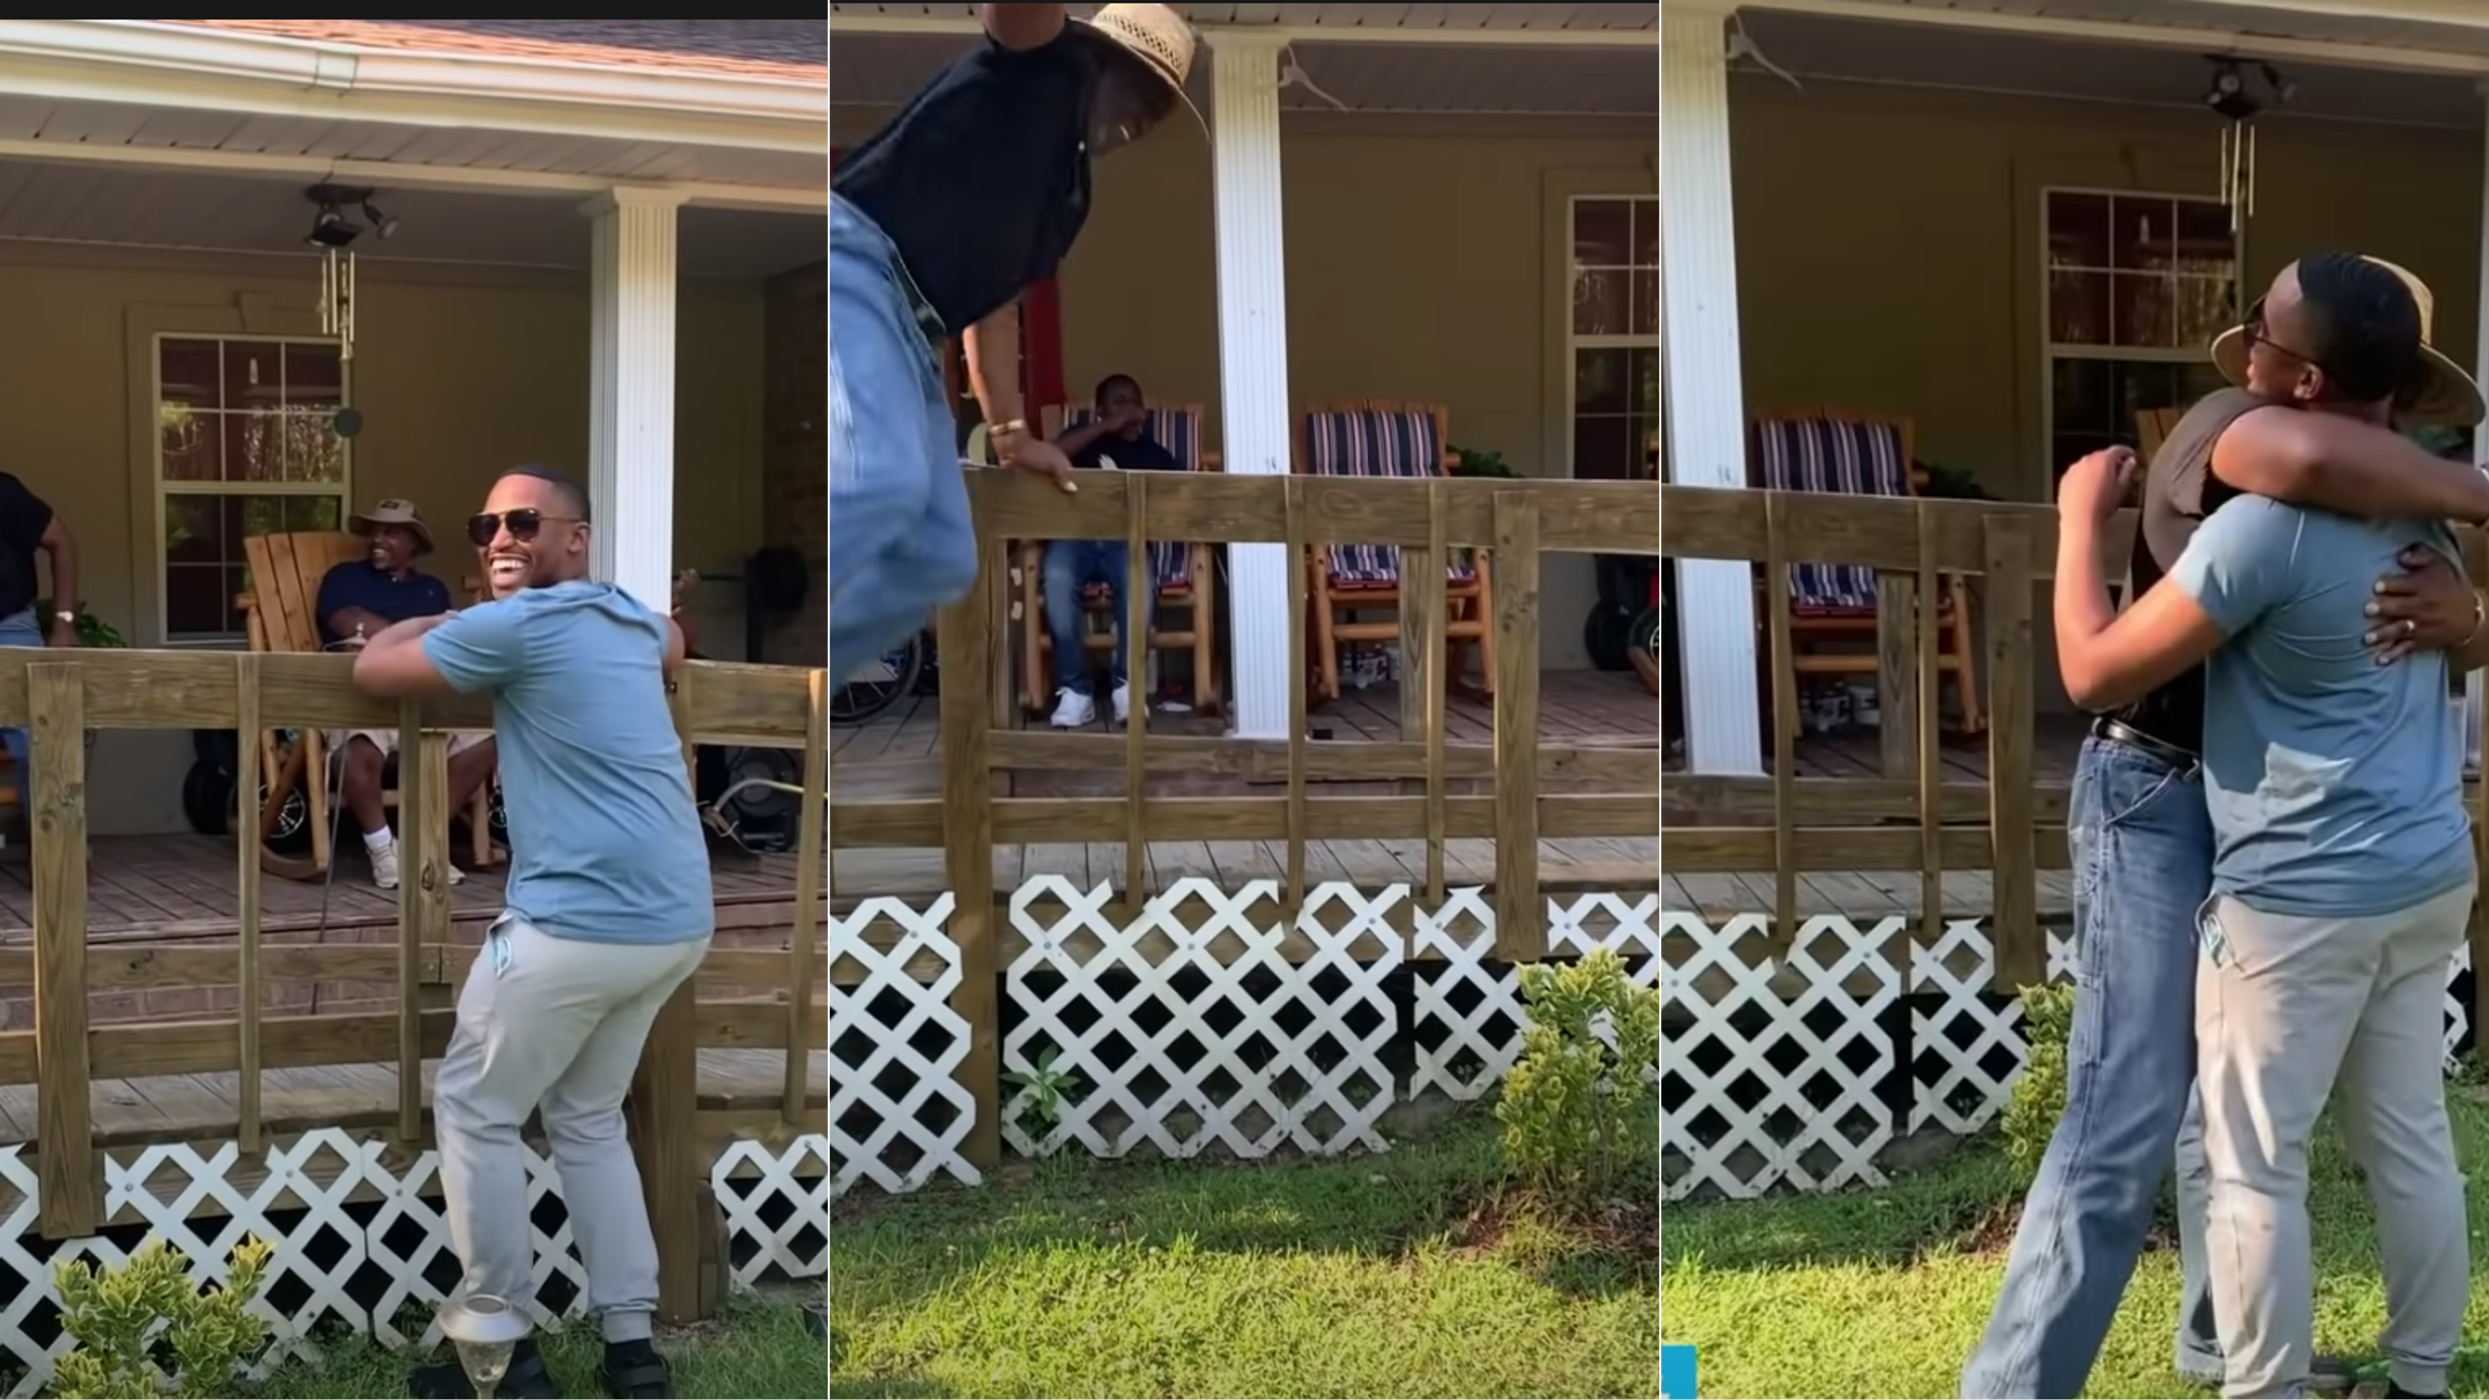 Three images showing the progression of a dad seeing his son on the front porch, jumping the fence and embracing him.